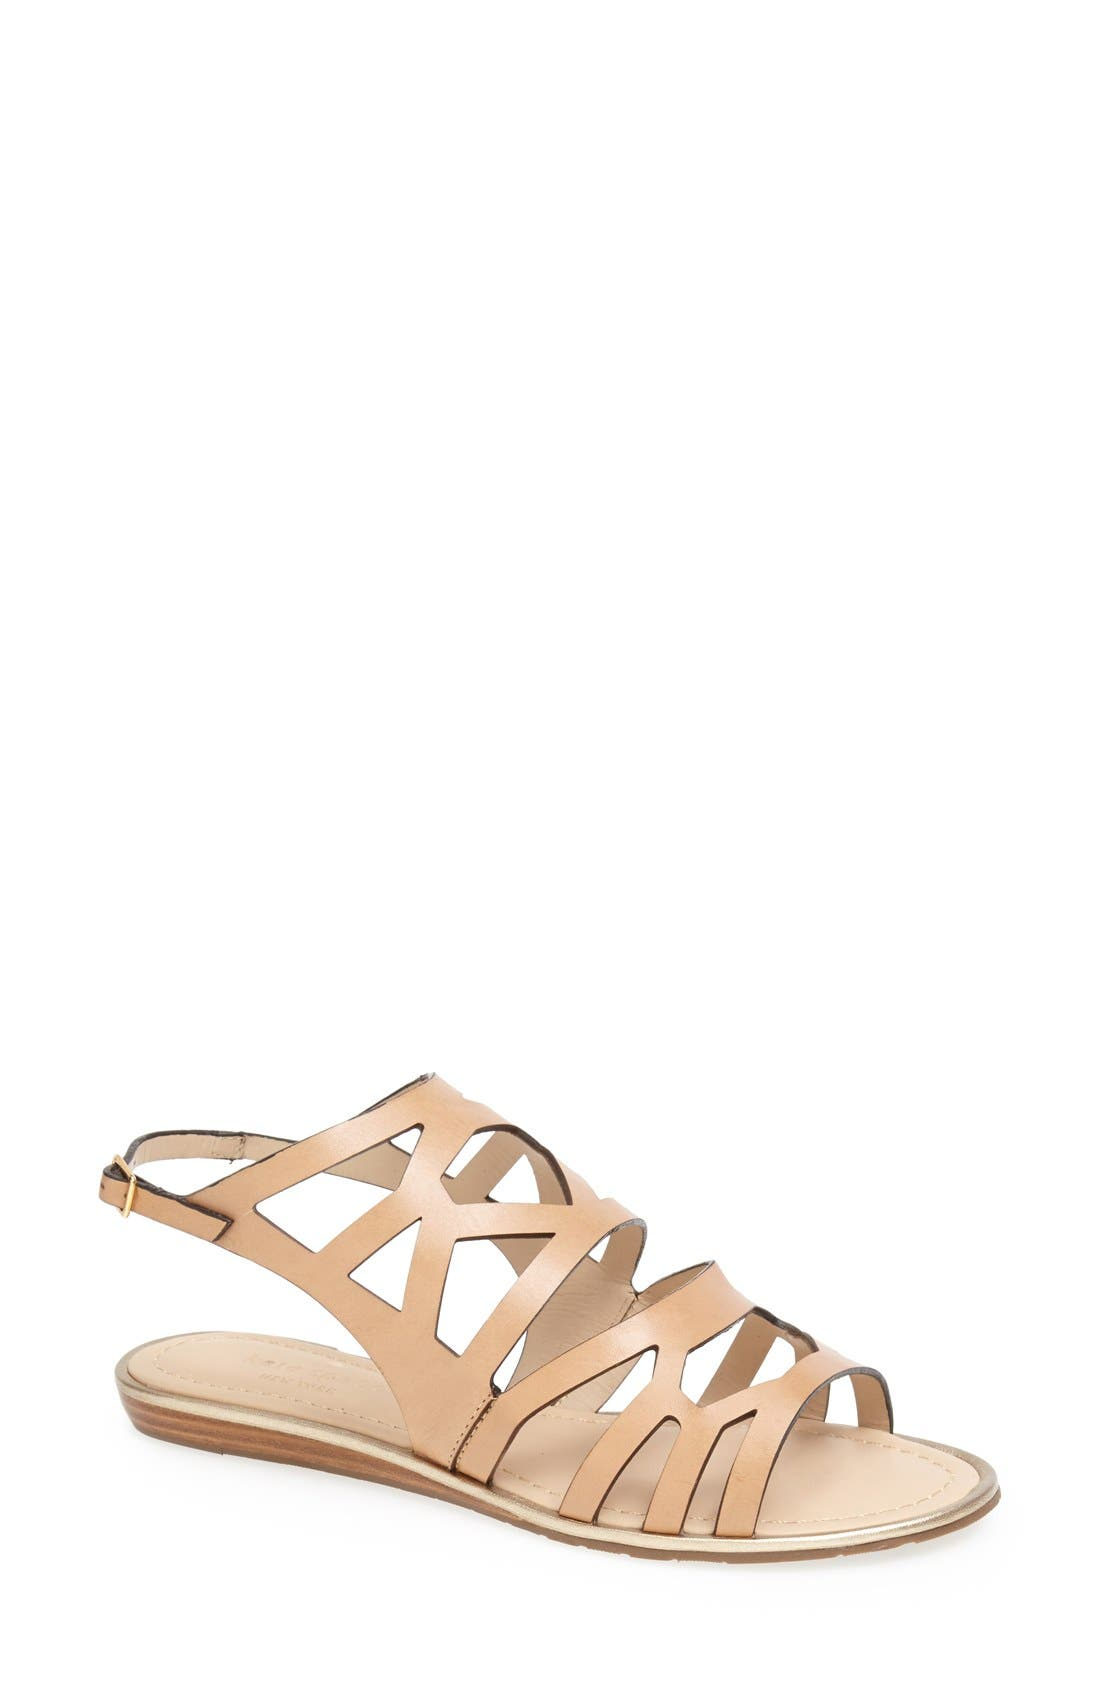 Alternate Image 1 Selected - kate spade new york 'aster' flat sandal